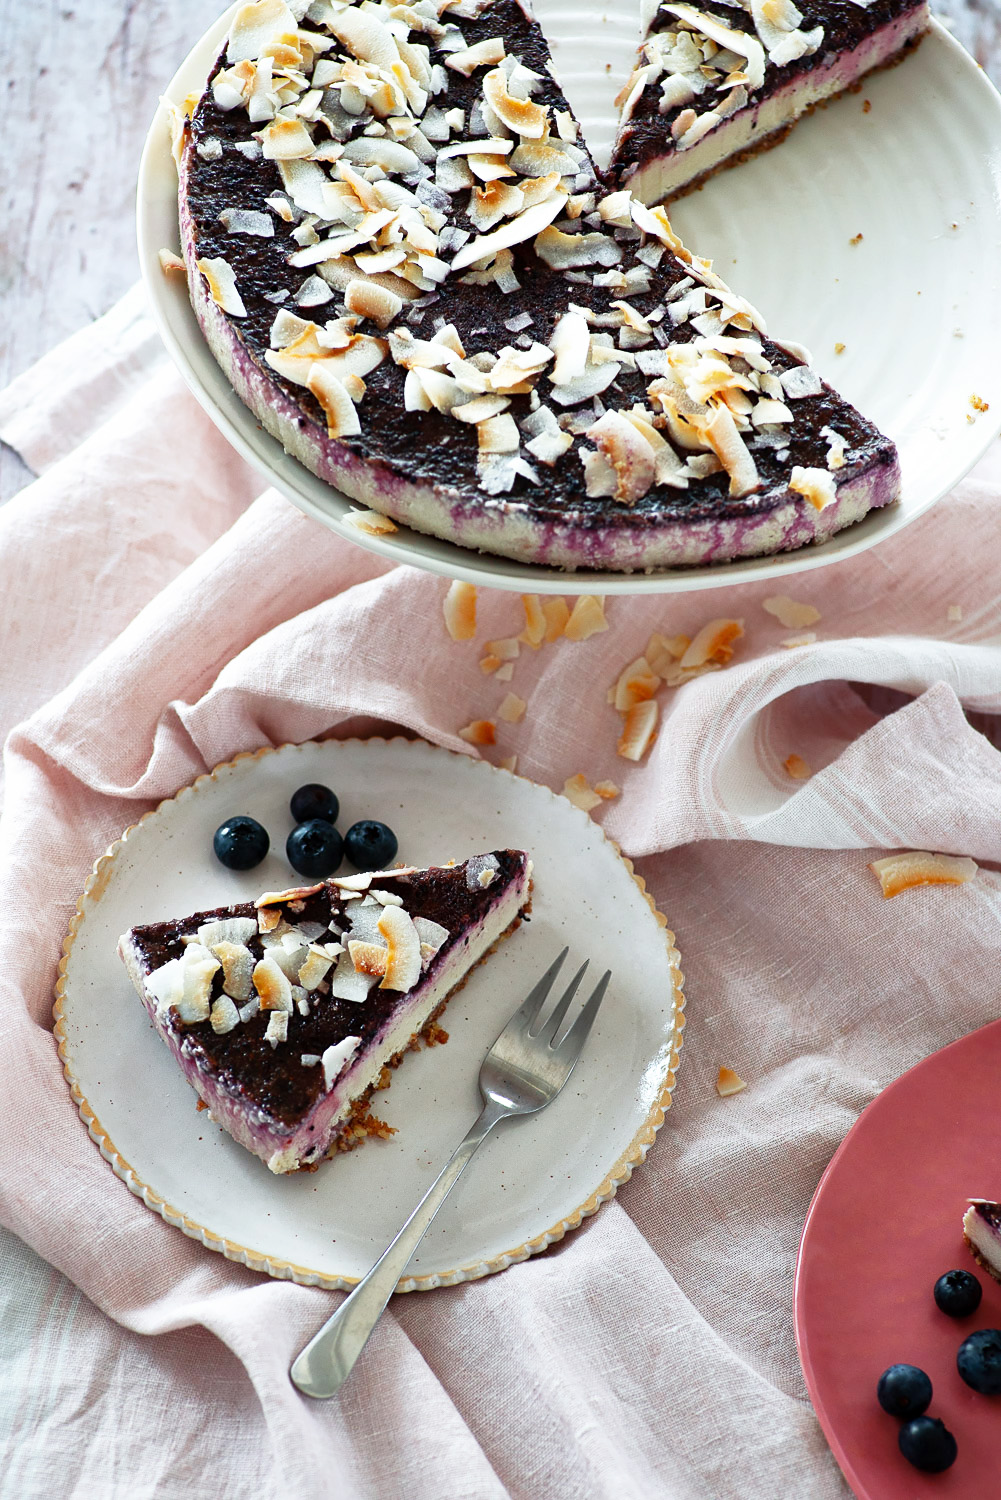 No-Bake Blueberry Cheesecake | Raw, vegan, paleo | Mondomulia